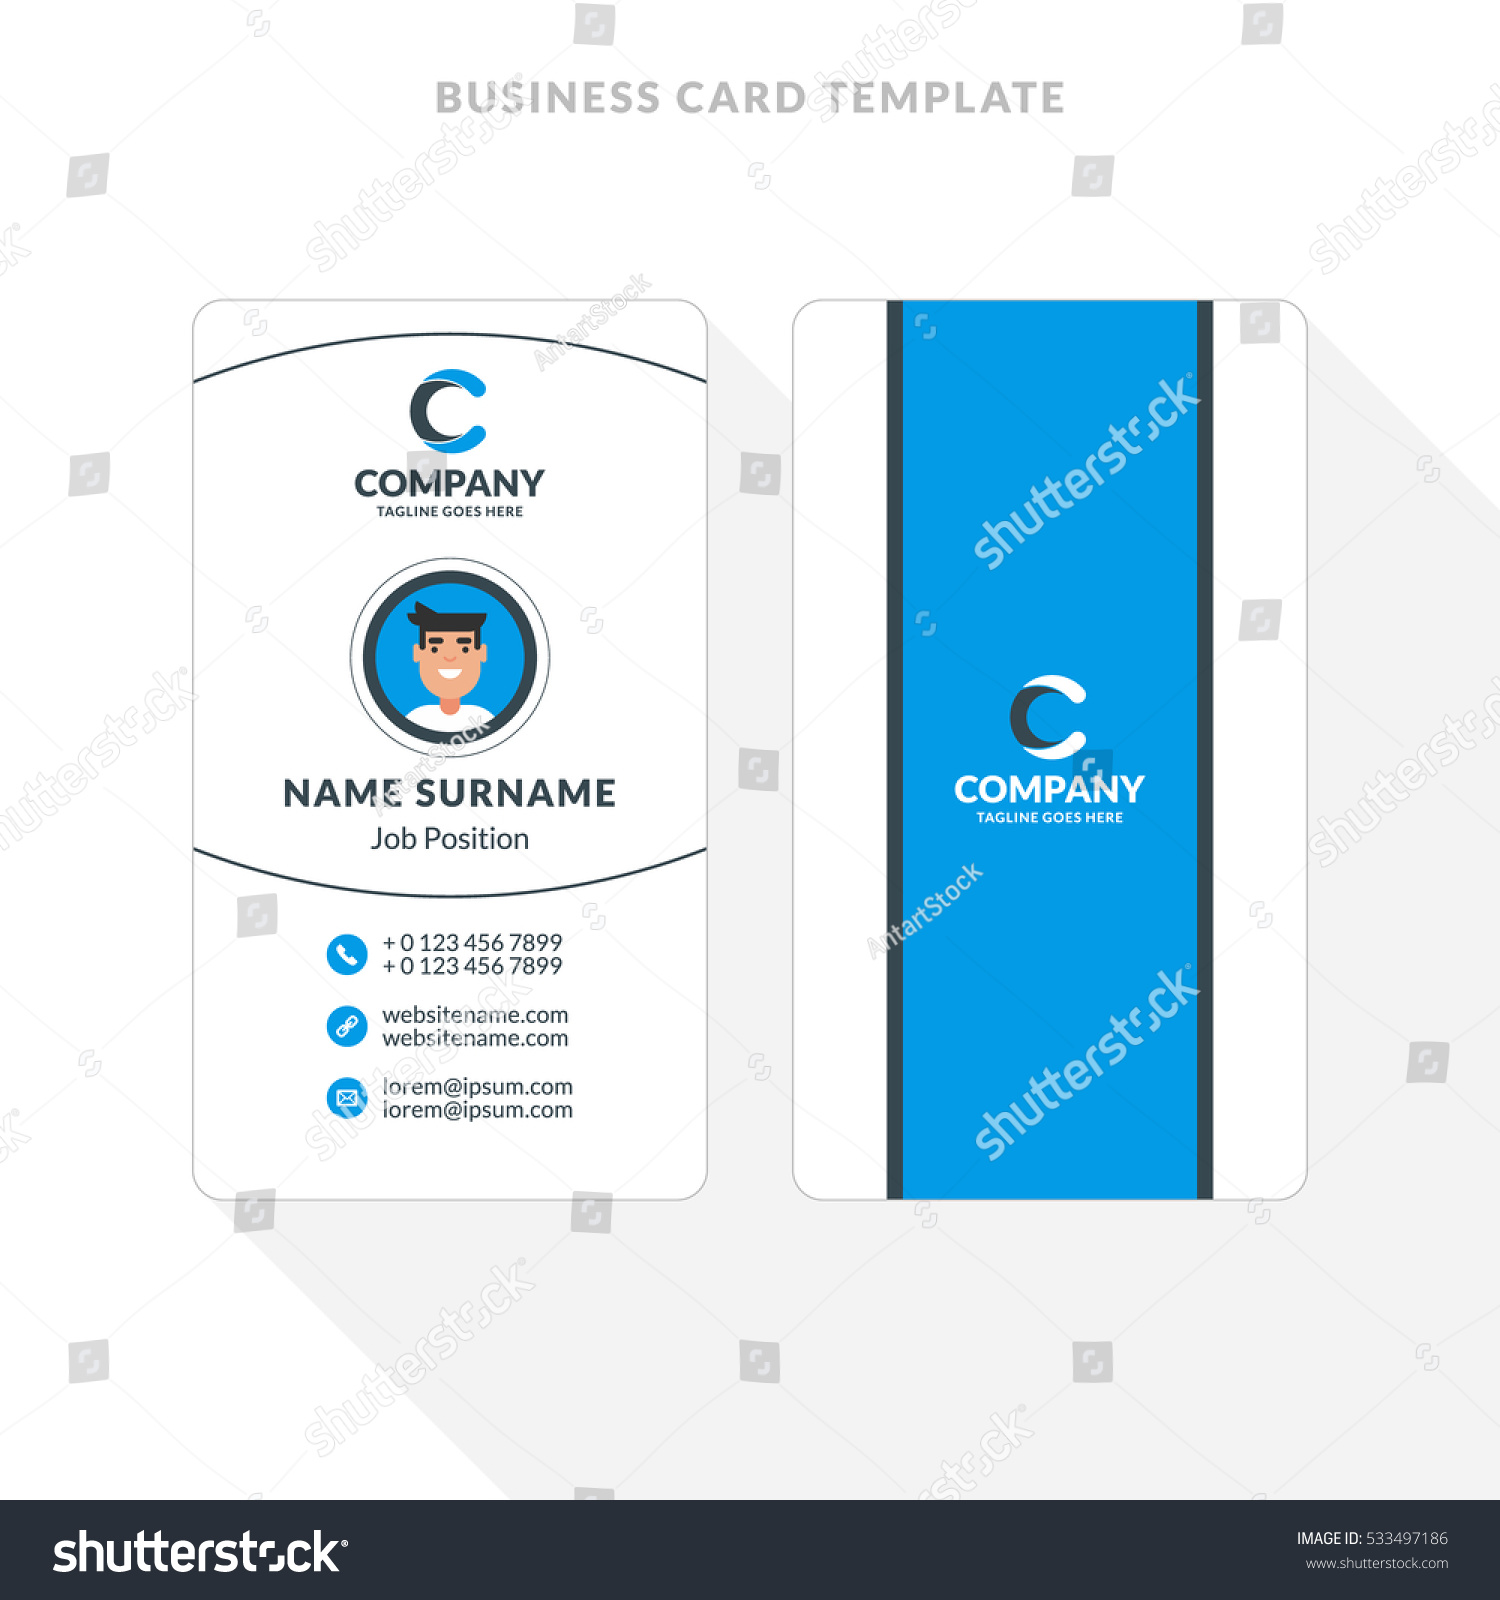 vertical doublesided business card template blue stock vector 533497186 shutterstock. Black Bedroom Furniture Sets. Home Design Ideas